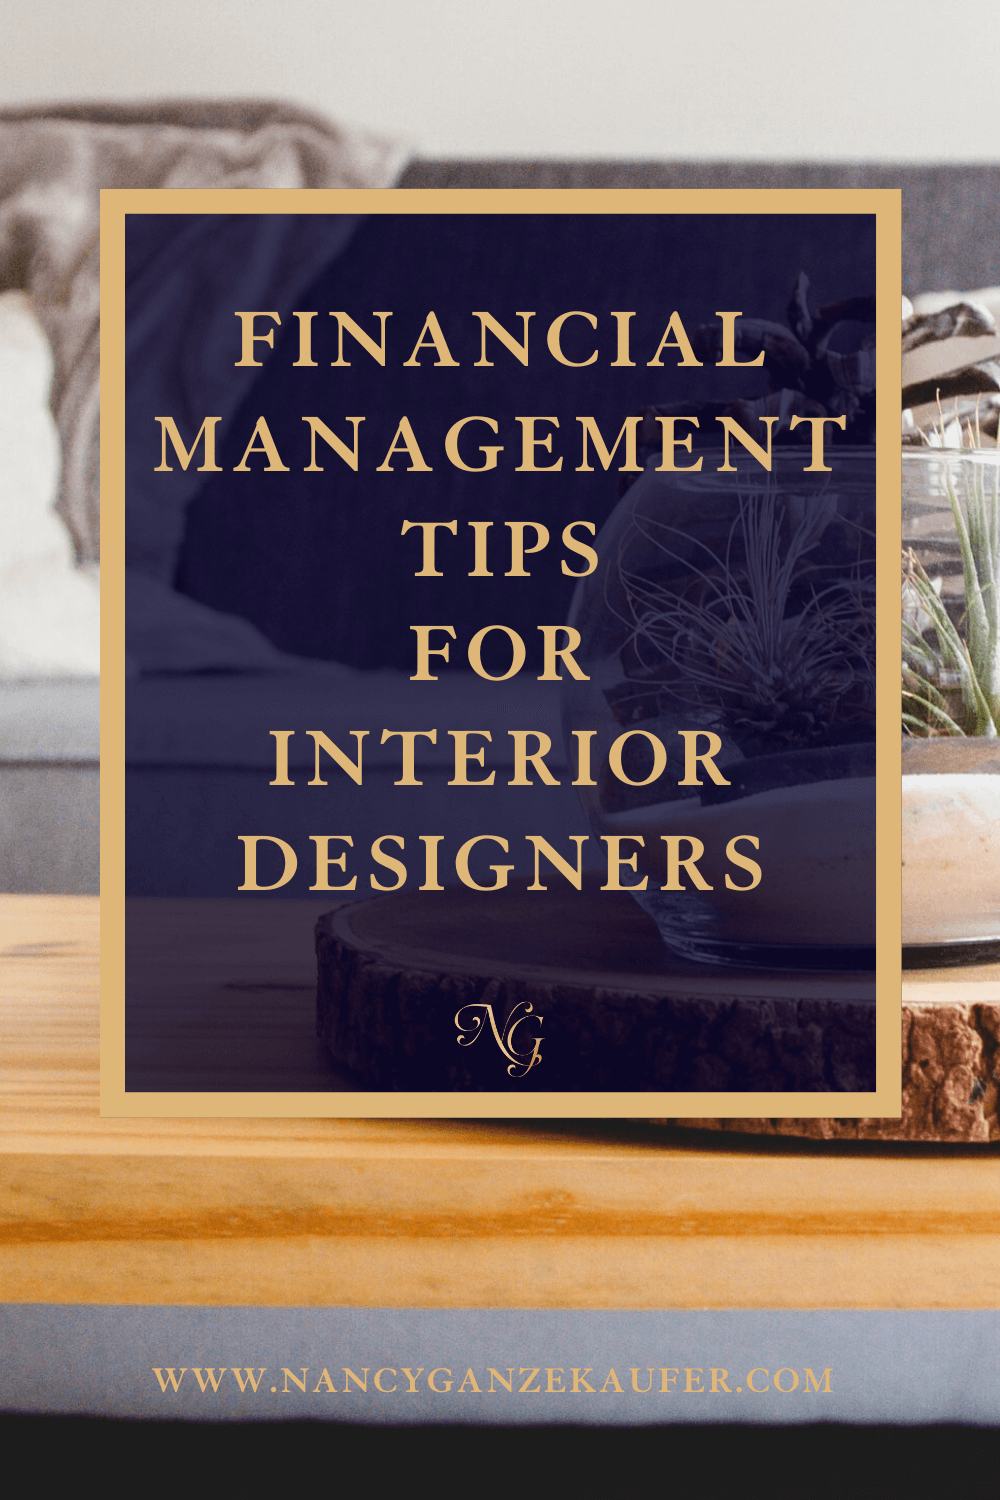 Financial management and interior design businesses.